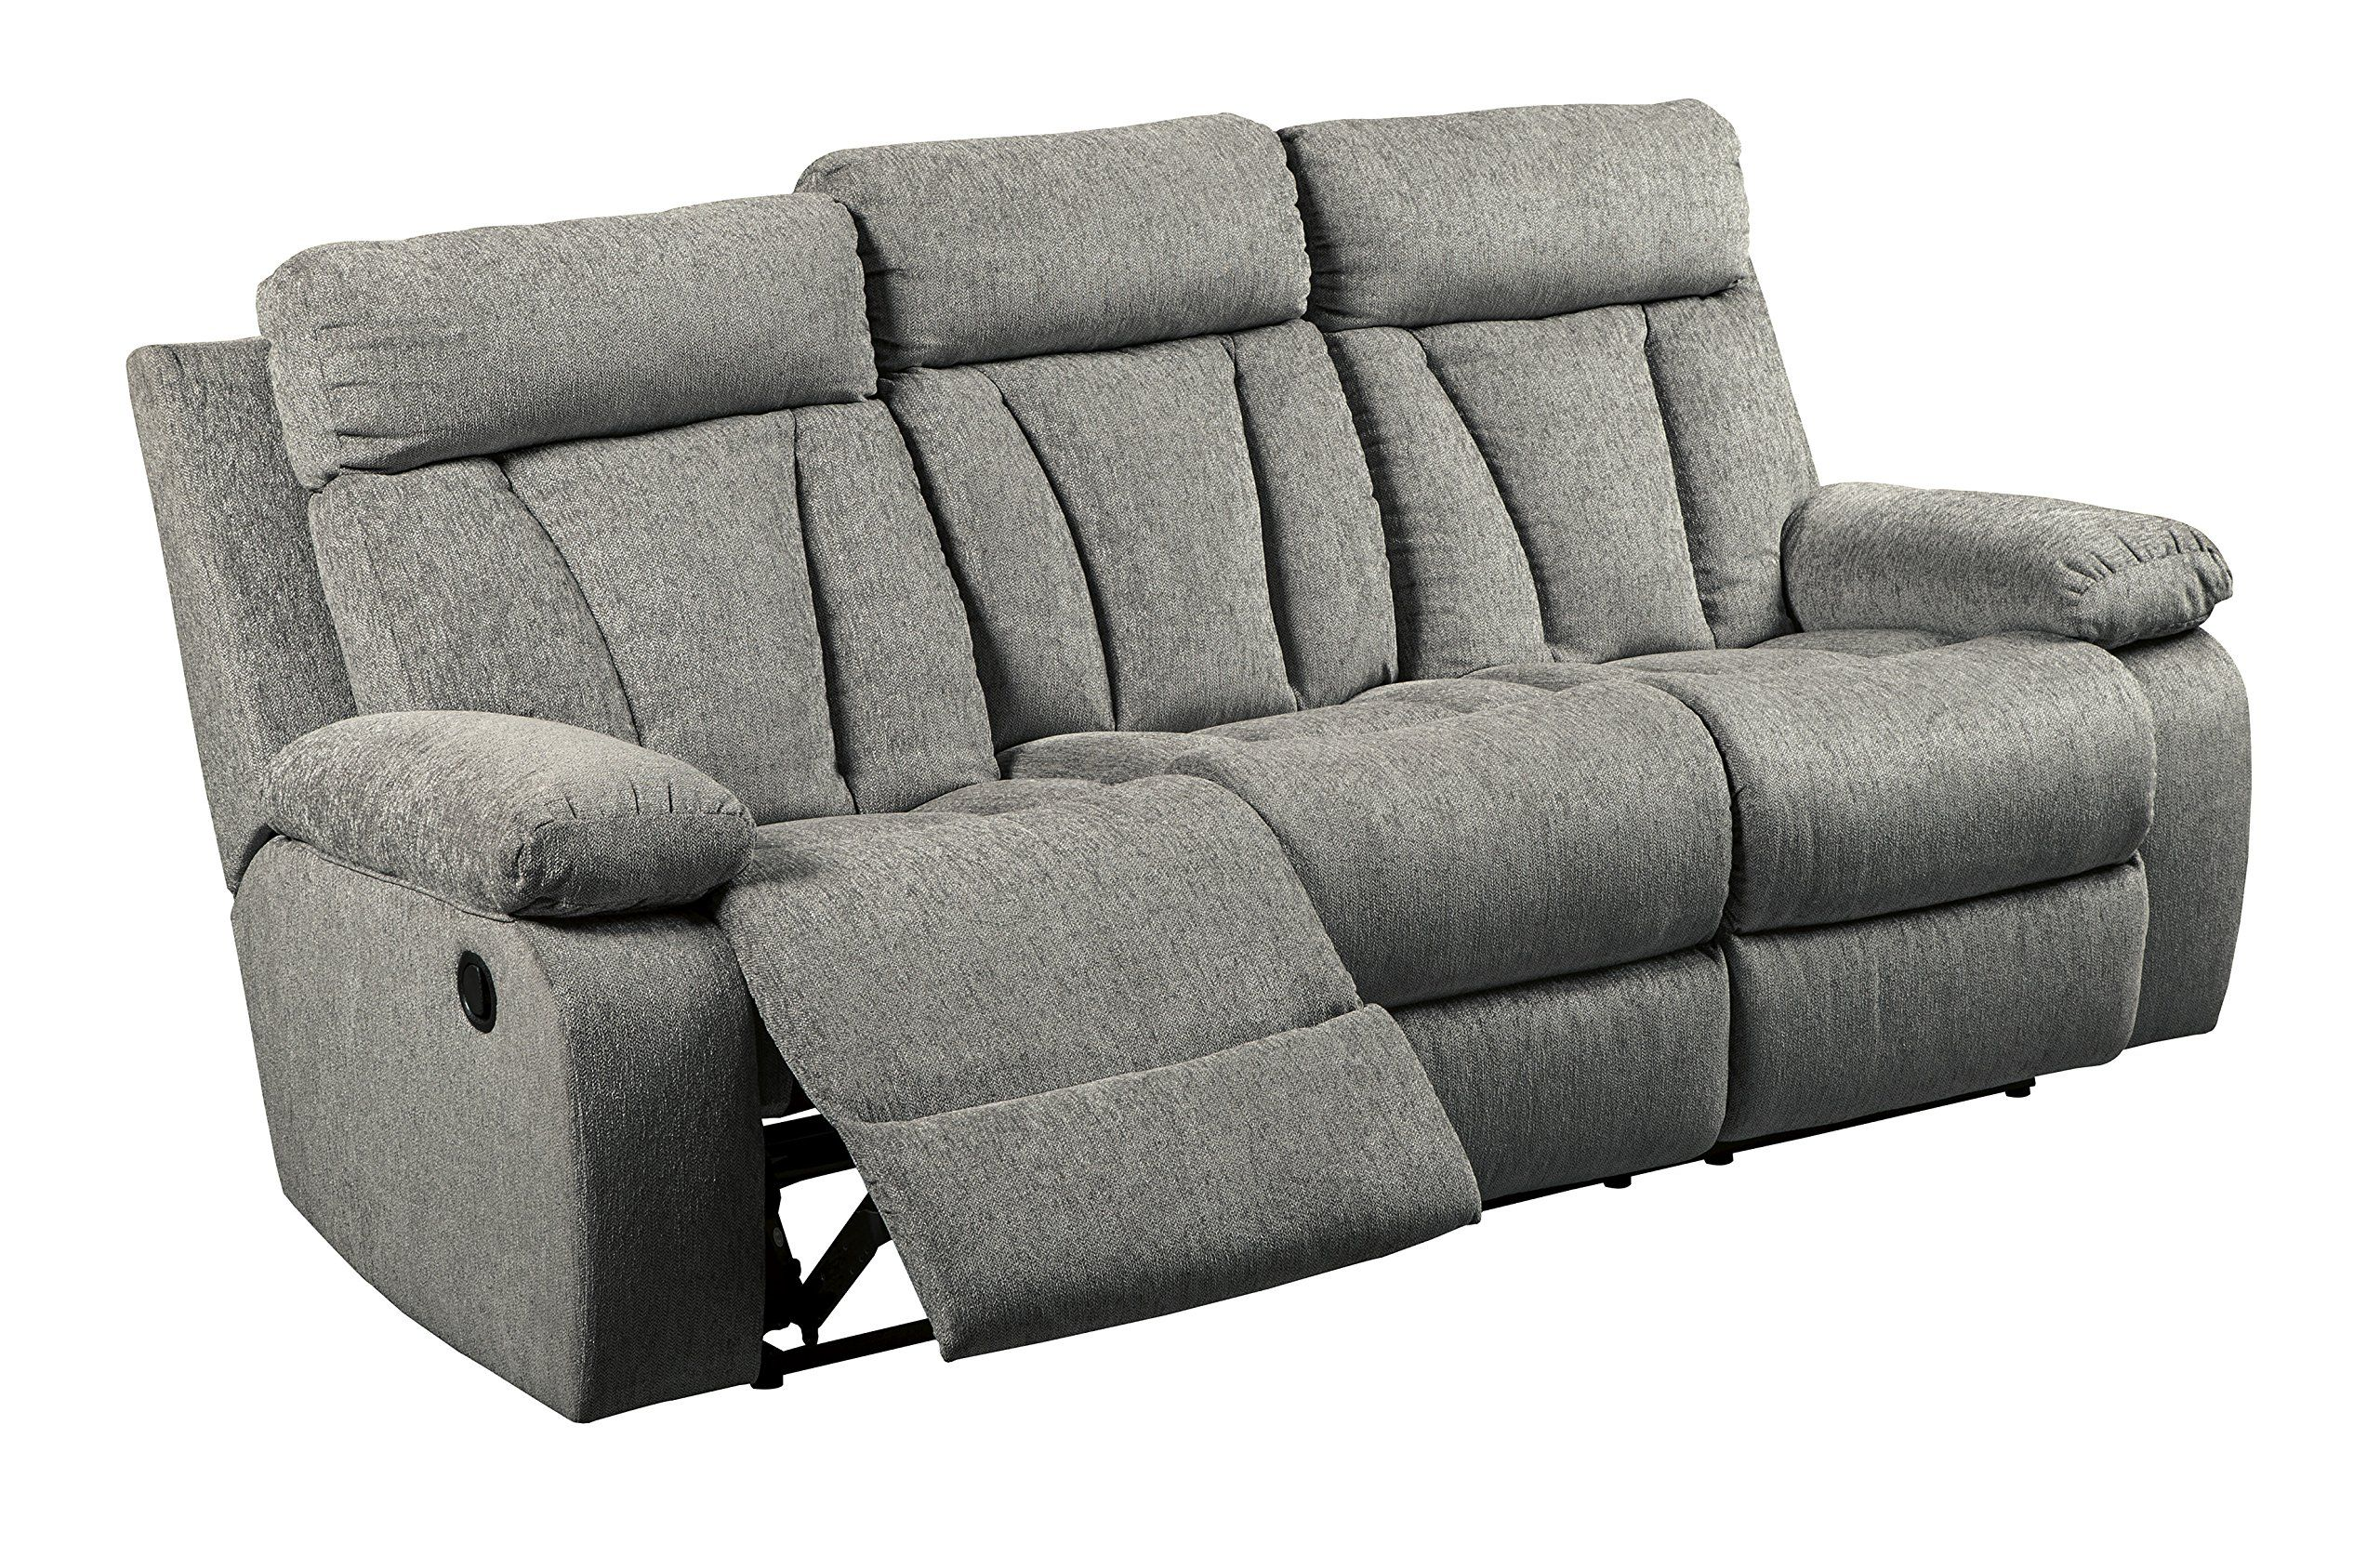 Signature Design By Ashley 7620489 Mitchiner Reclining Sofa With Drop Down Table Fog Rea Reclining Sofa Ashley Furniture Living Room Ashley Furniture Sofas